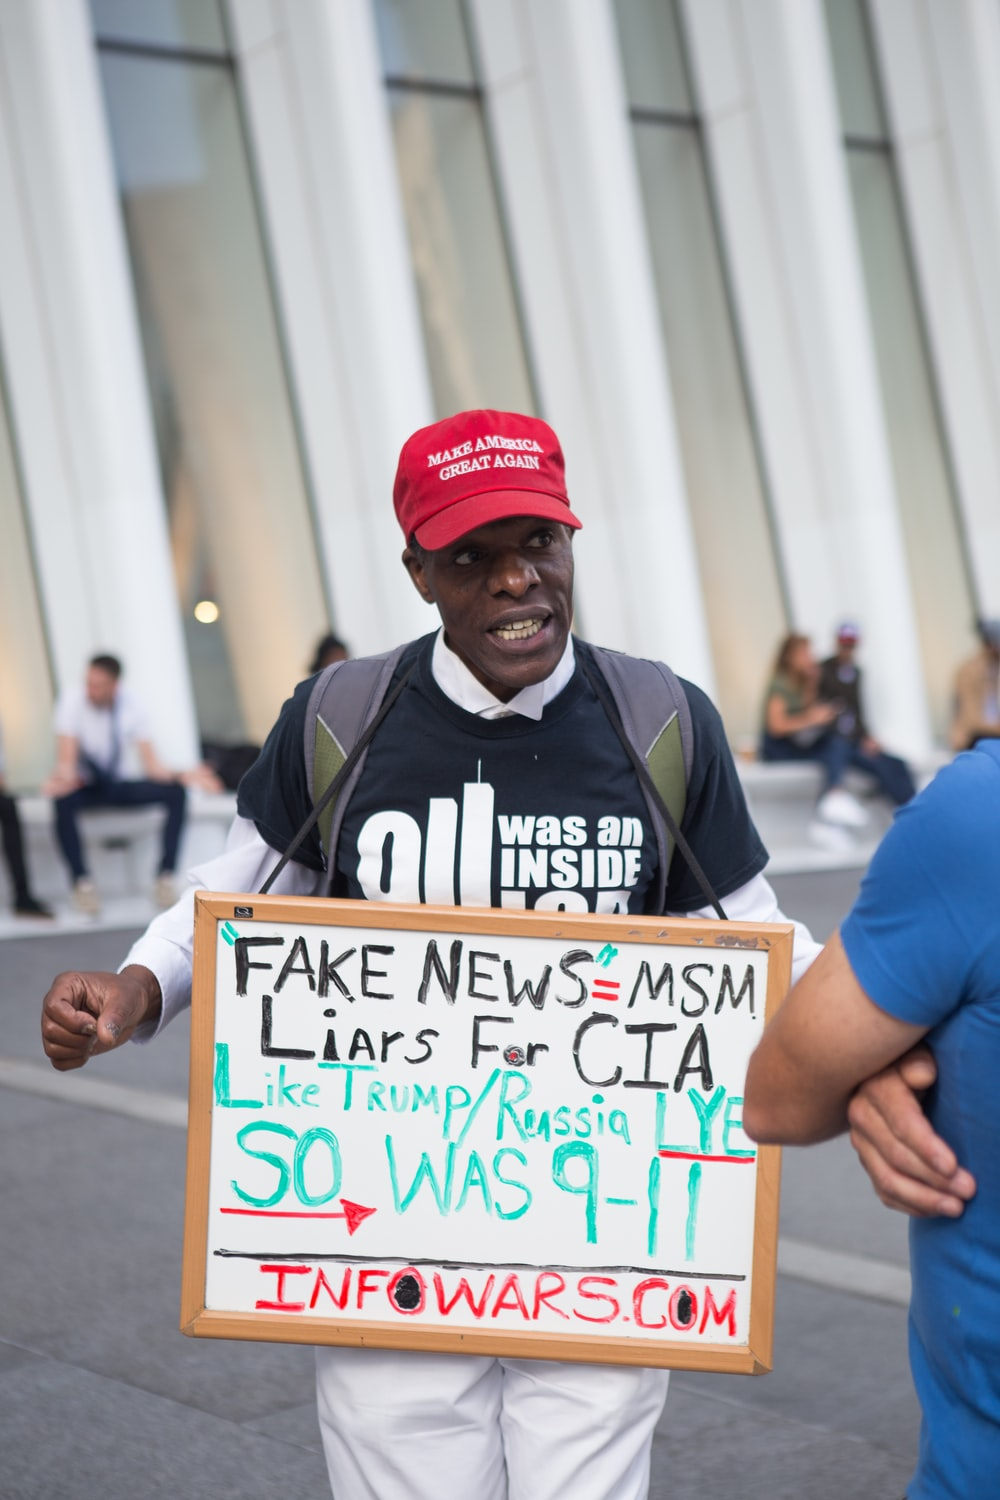 man in black and white shirt with red make America great again cap holding fake news=MSM sign near white building